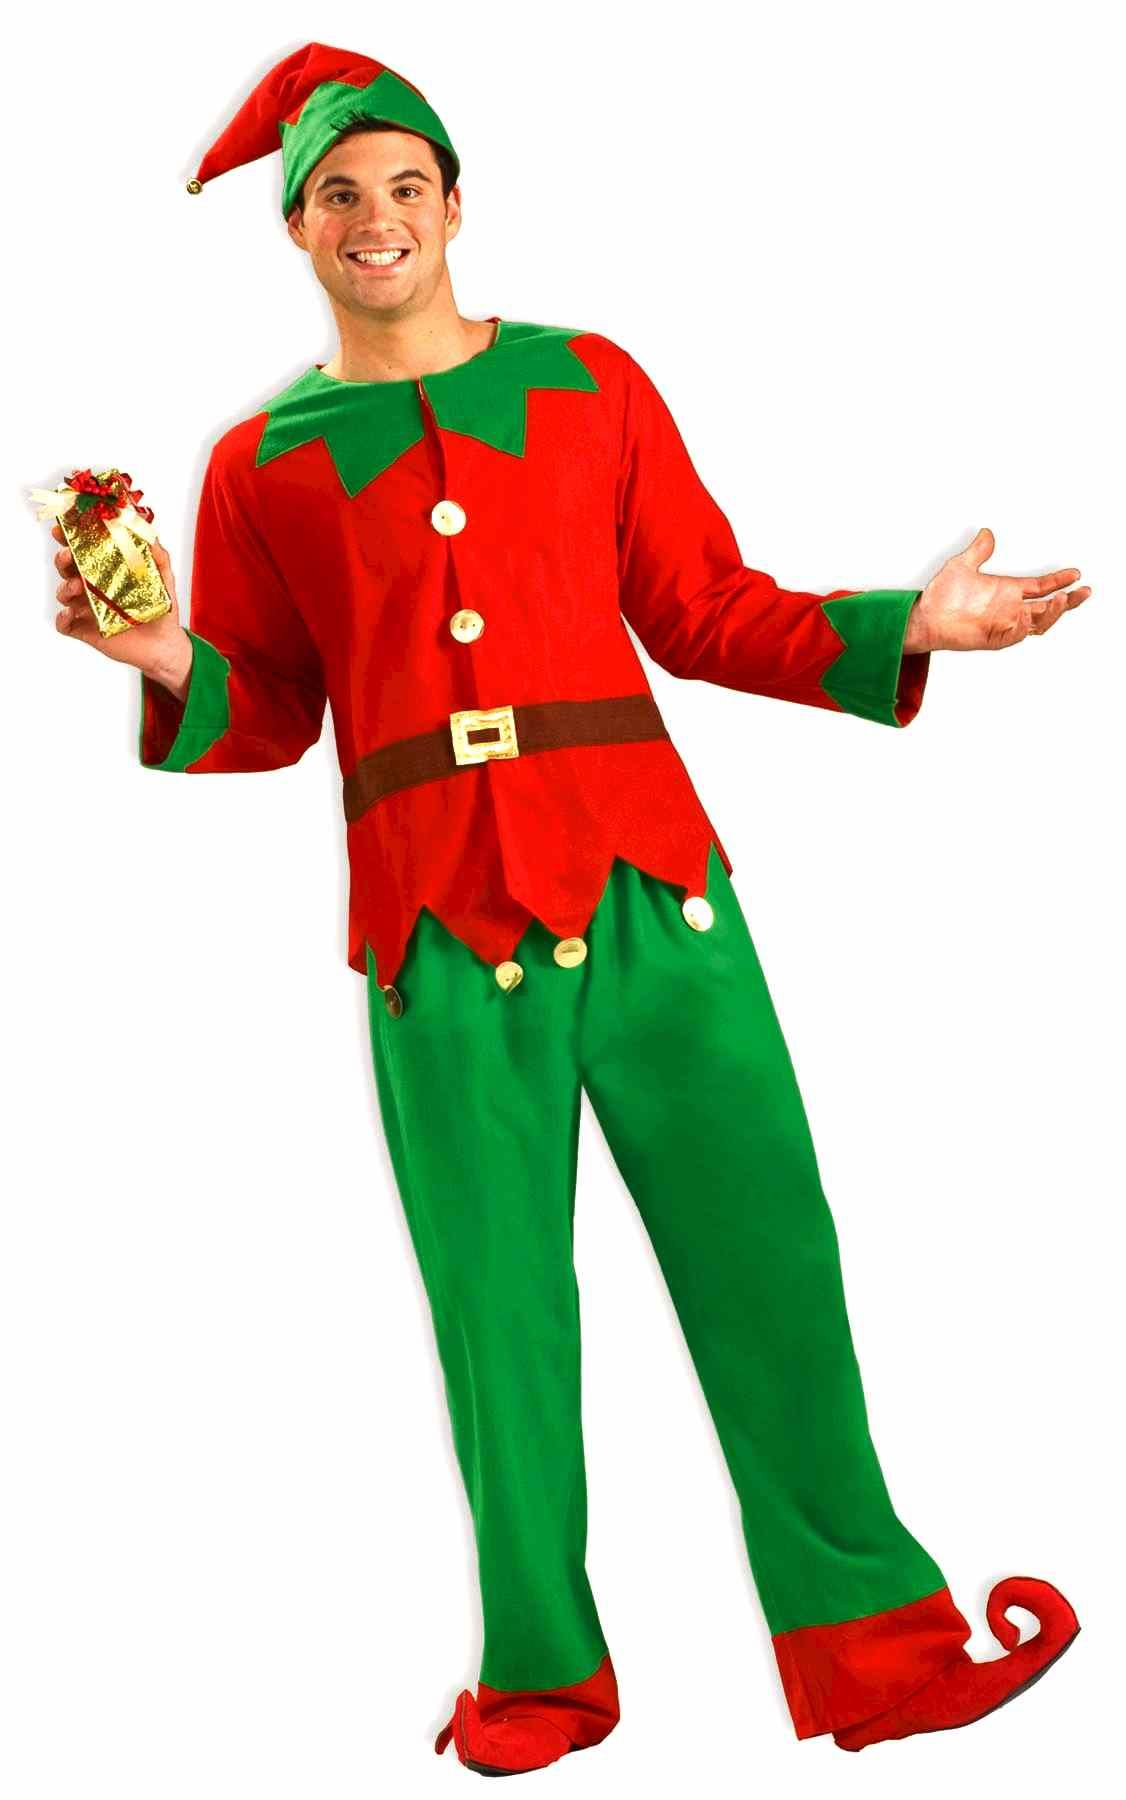 We also carry coordinating Mrs. Claus and elf costumes and accessories to round out your group look. Deck the halls at your next holiday party, and snag a sweater that's sure to earn you the ugliest Christmas sweater award.